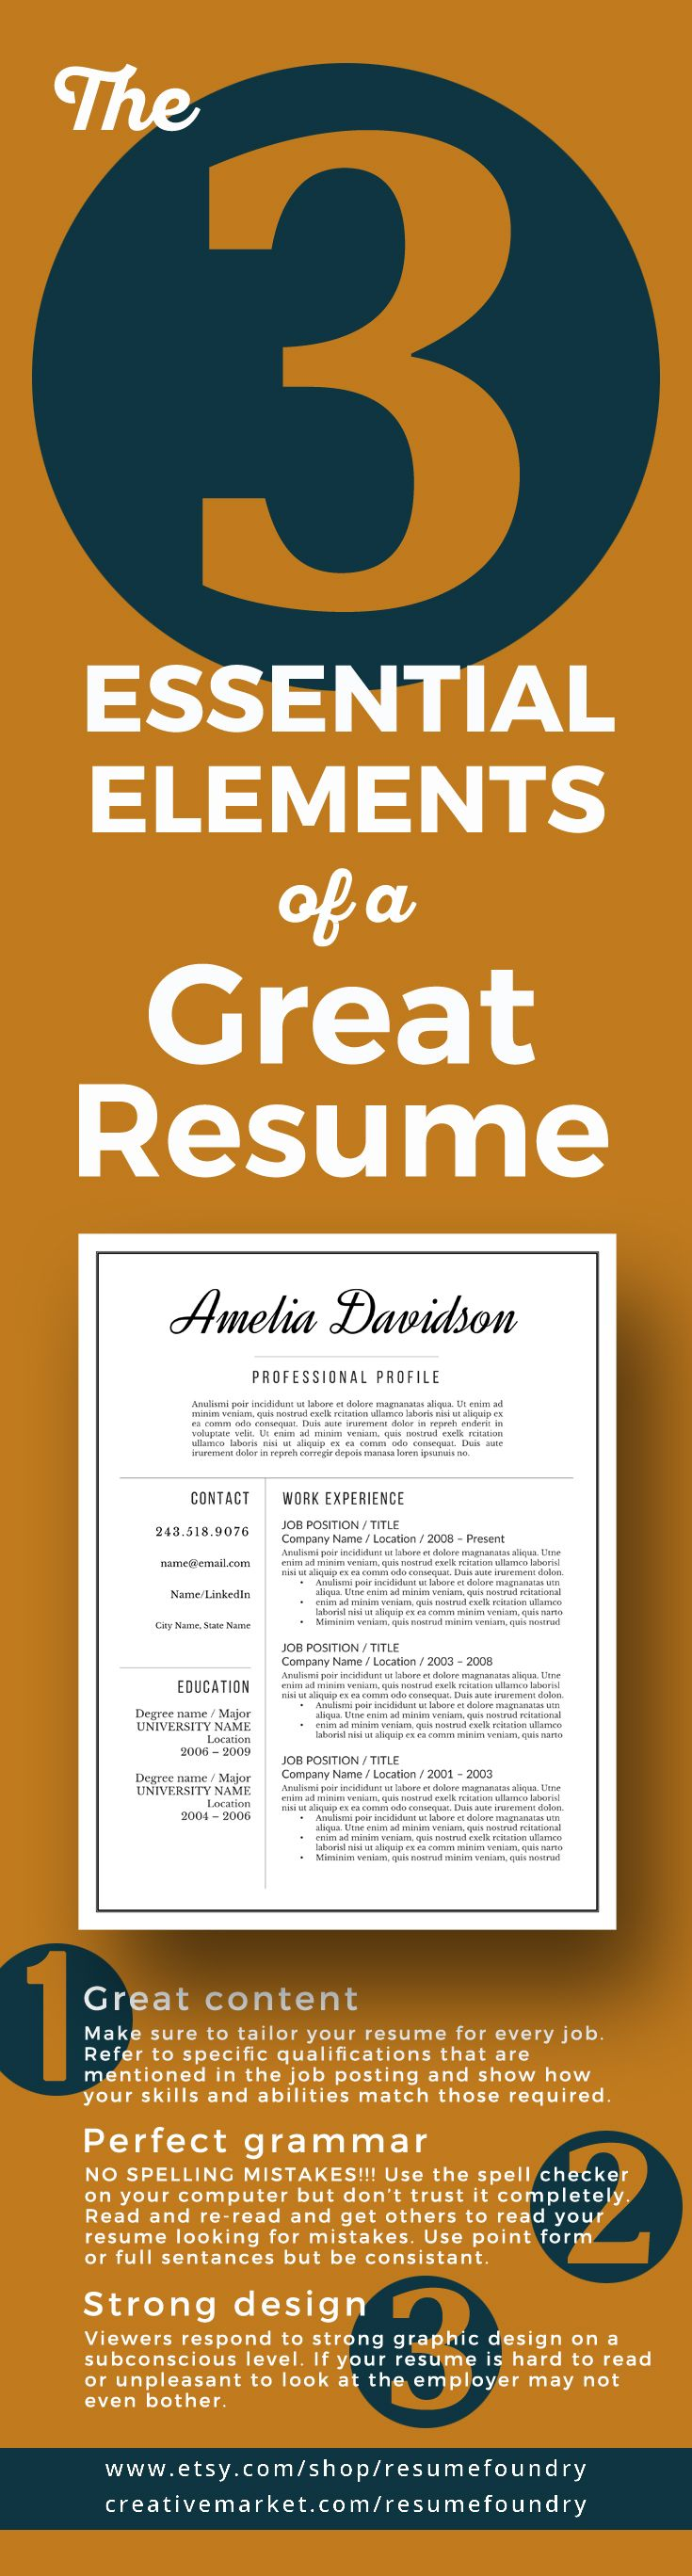 make sure to include these three essential elements to perfect your resume resume foundry - Perfect Your Resume